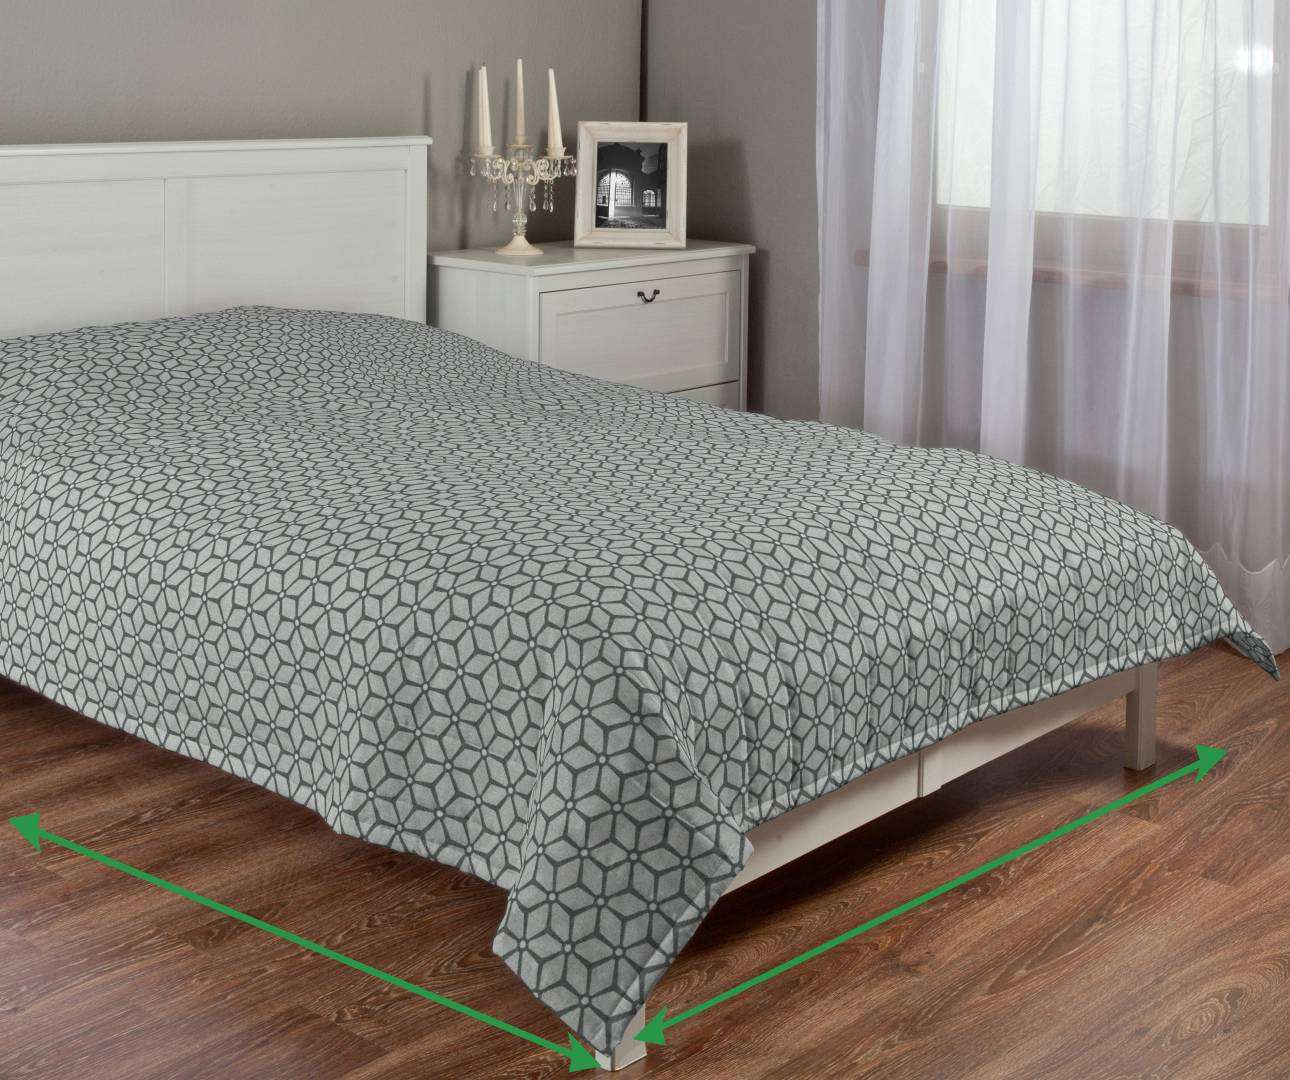 Quilted throw (vertical quilt pattern) in collection Rustica, fabric: 138-21